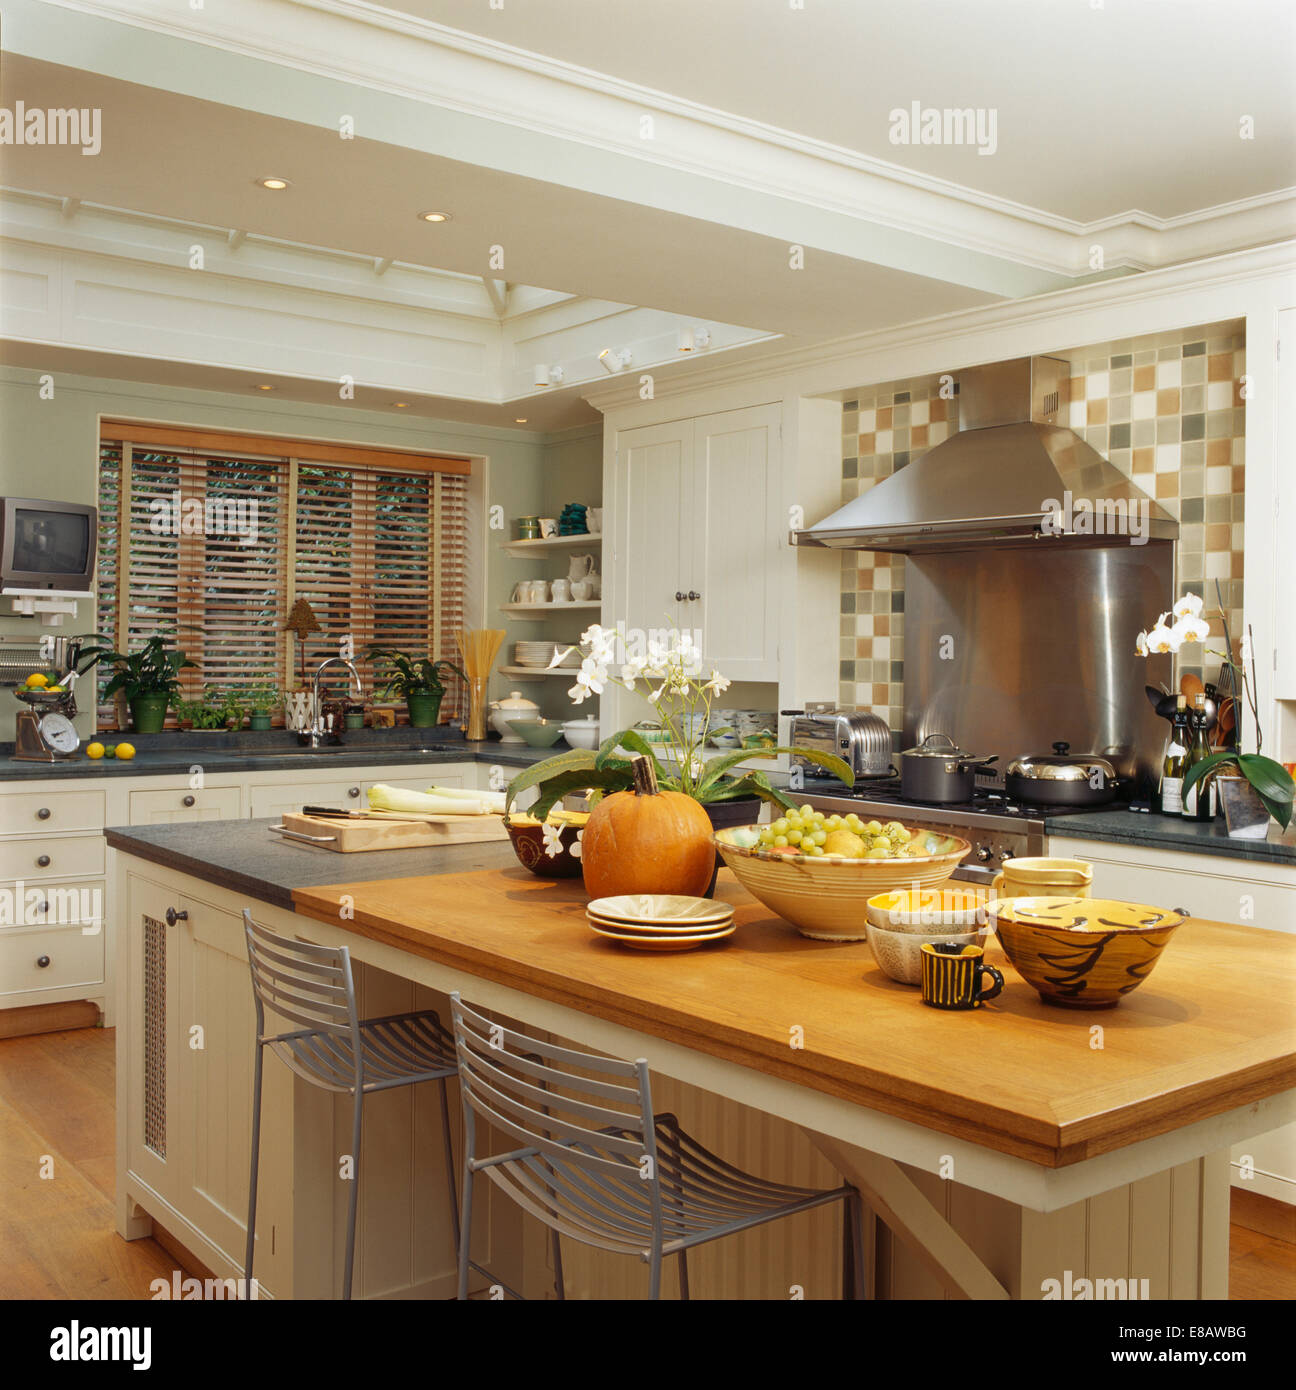 Island Units For Kitchens: Bowls Of Fruit On Large Island Unit With Breakfast Bar In